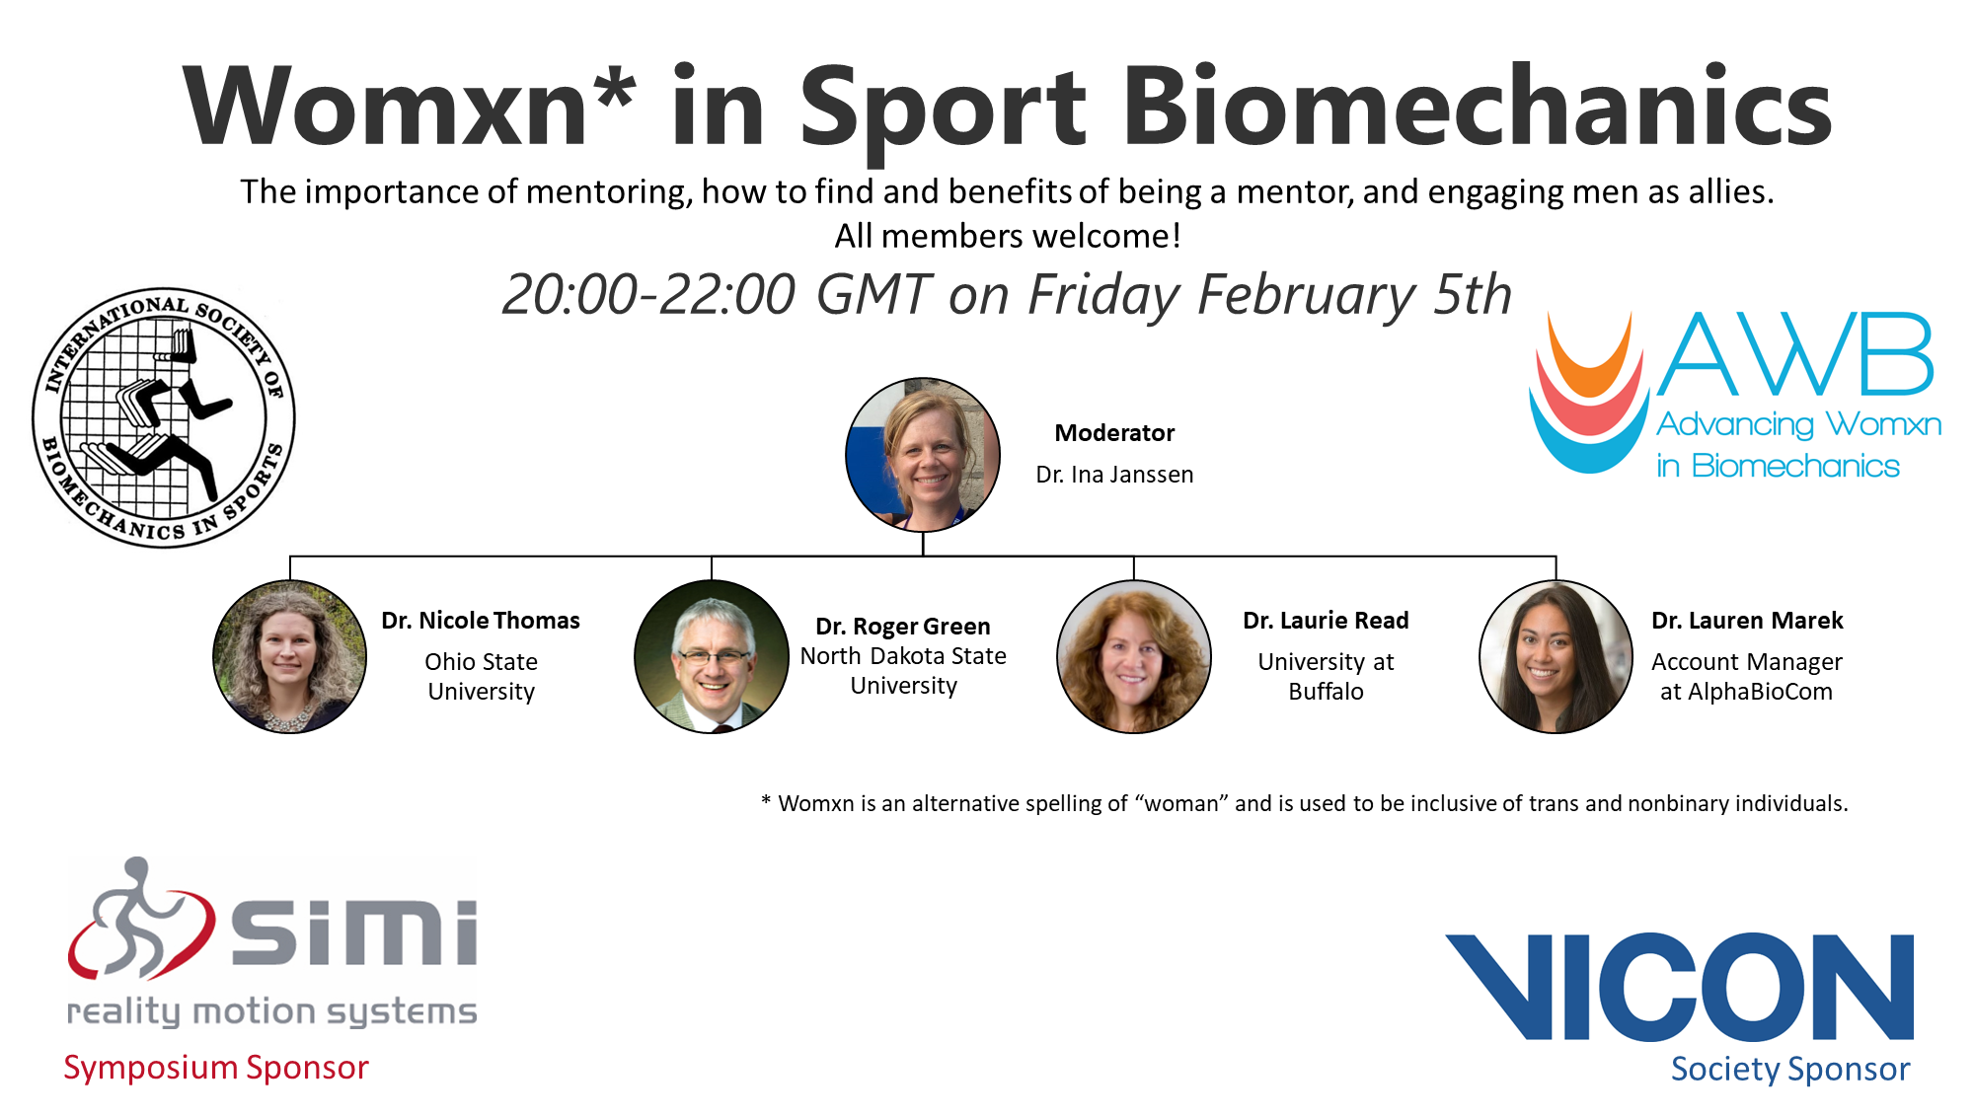 Womxn in Sport Biomechanics. Mentoring. 20:00-22:00 GMT on Friday February 5th. Moderator Dr. Ina Janssen. Speakers: Dr Nicole Thomas Ohio State University,  Dr. Roger Green North Dakota State University, Dr Laurie Read University at Buffalo. Dr. Lauren Marek Account Manager at AlphaBioCom.